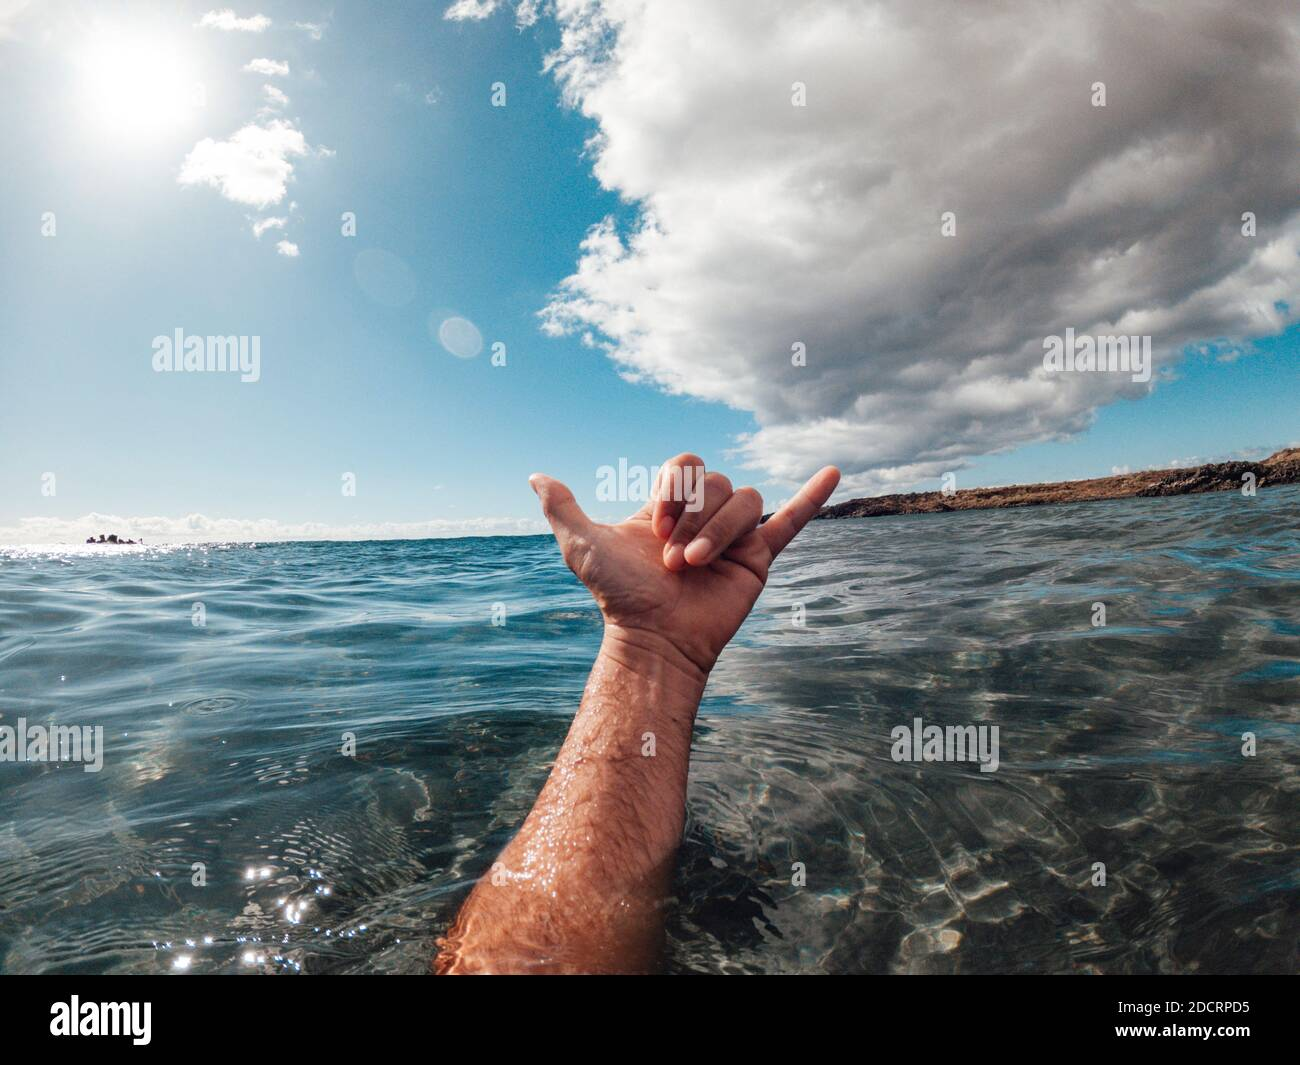 Man hands in surf sign hallo out of the blue ocean water with coast and nice sky in background - concept of people and summer holiday vacation Stock Photo